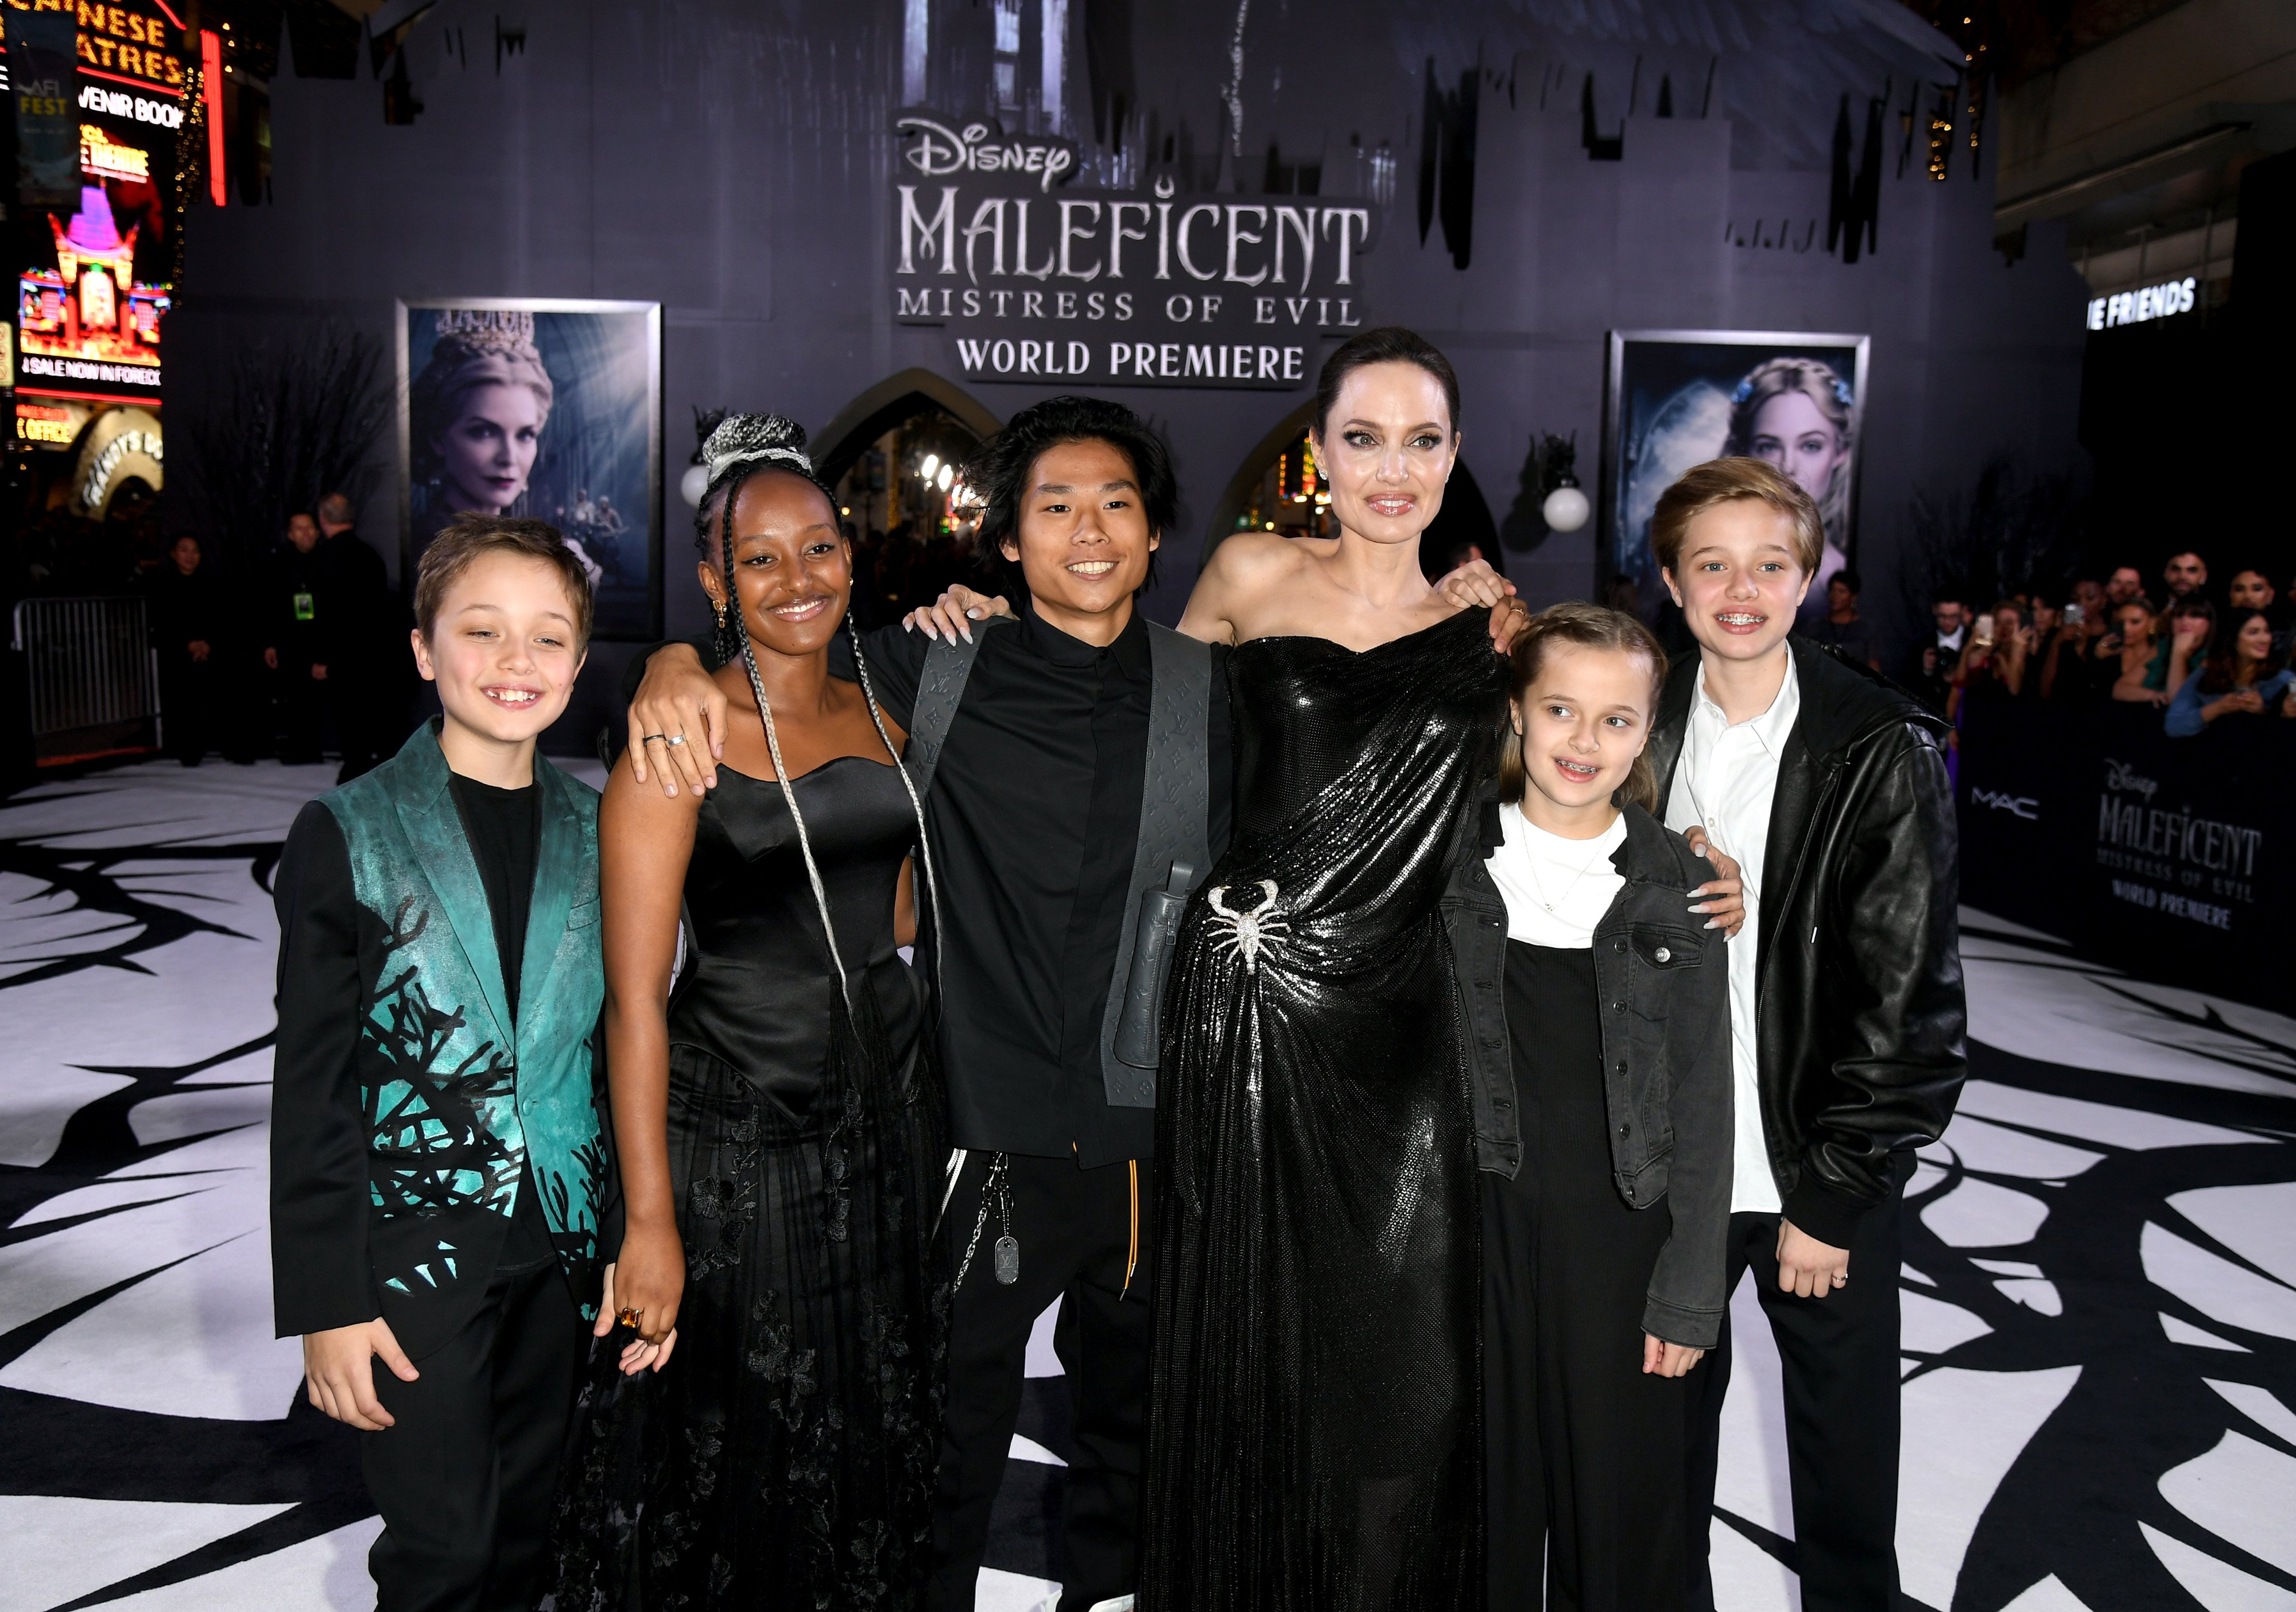 Image Source: Getty Images/Her children supporting Jolie in her movie Maleficent